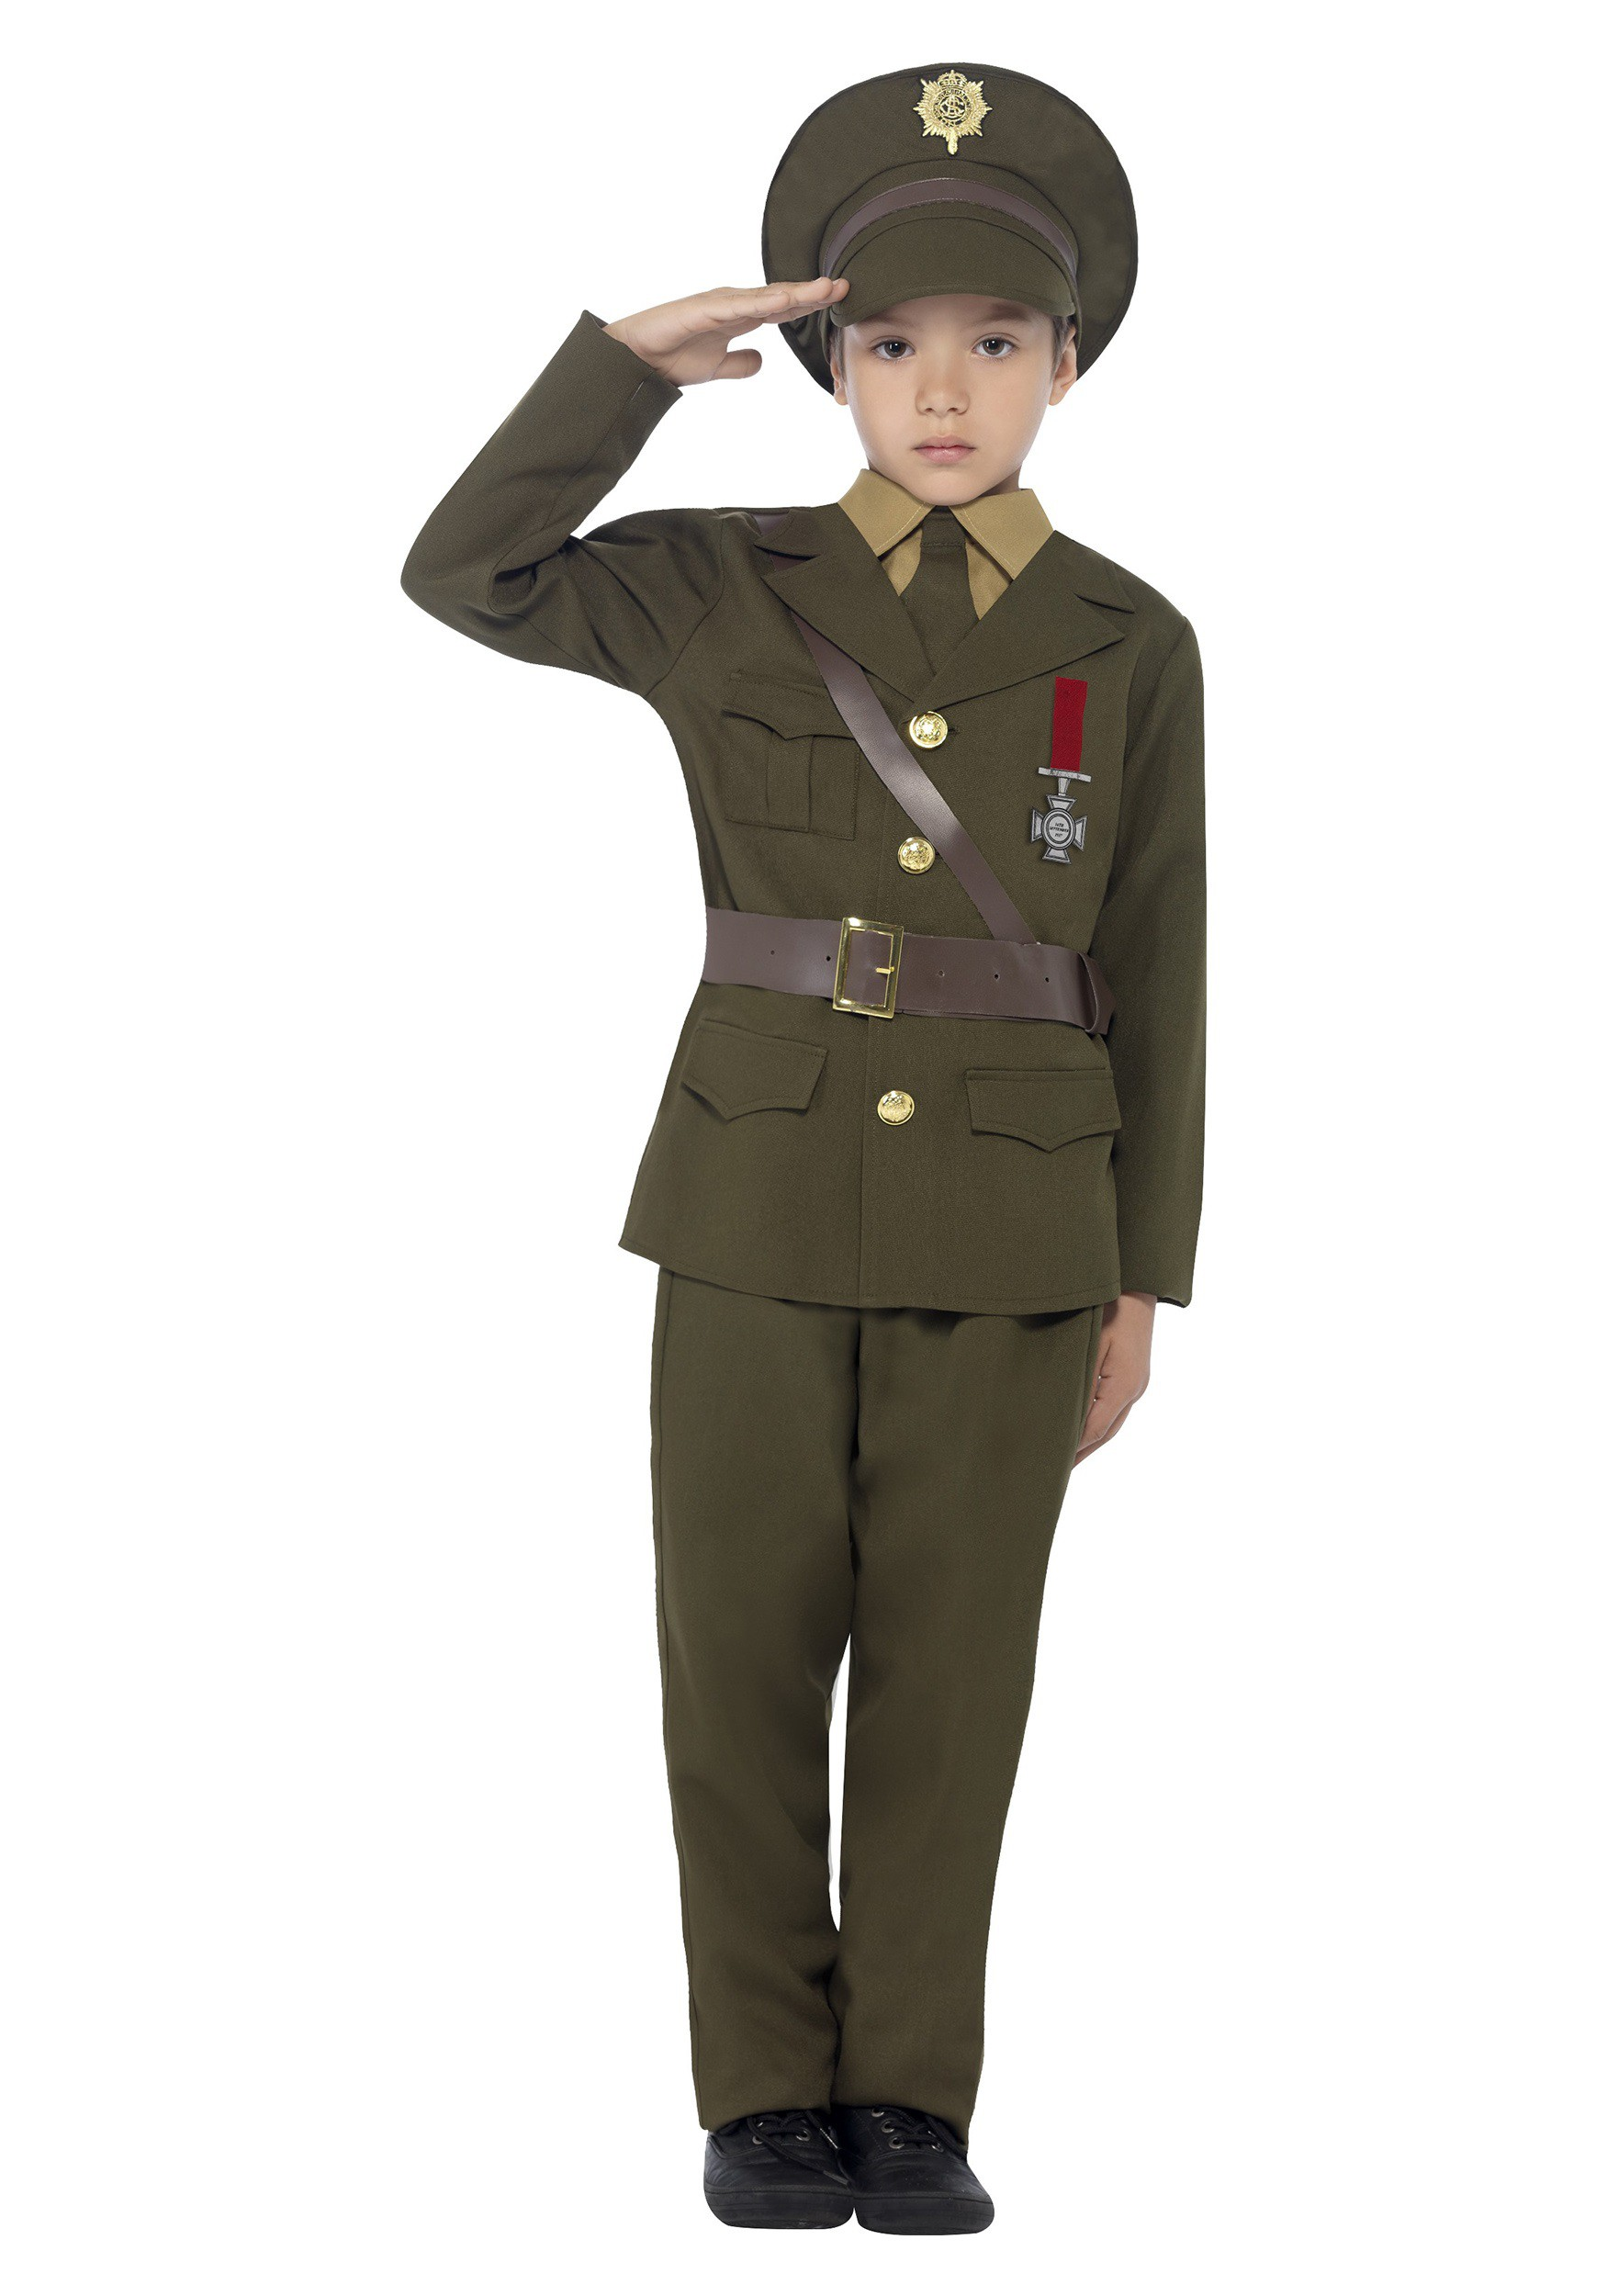 Kids Army Officer Costume  sc 1 st  Fun.com & Army Officer Costume for Kids